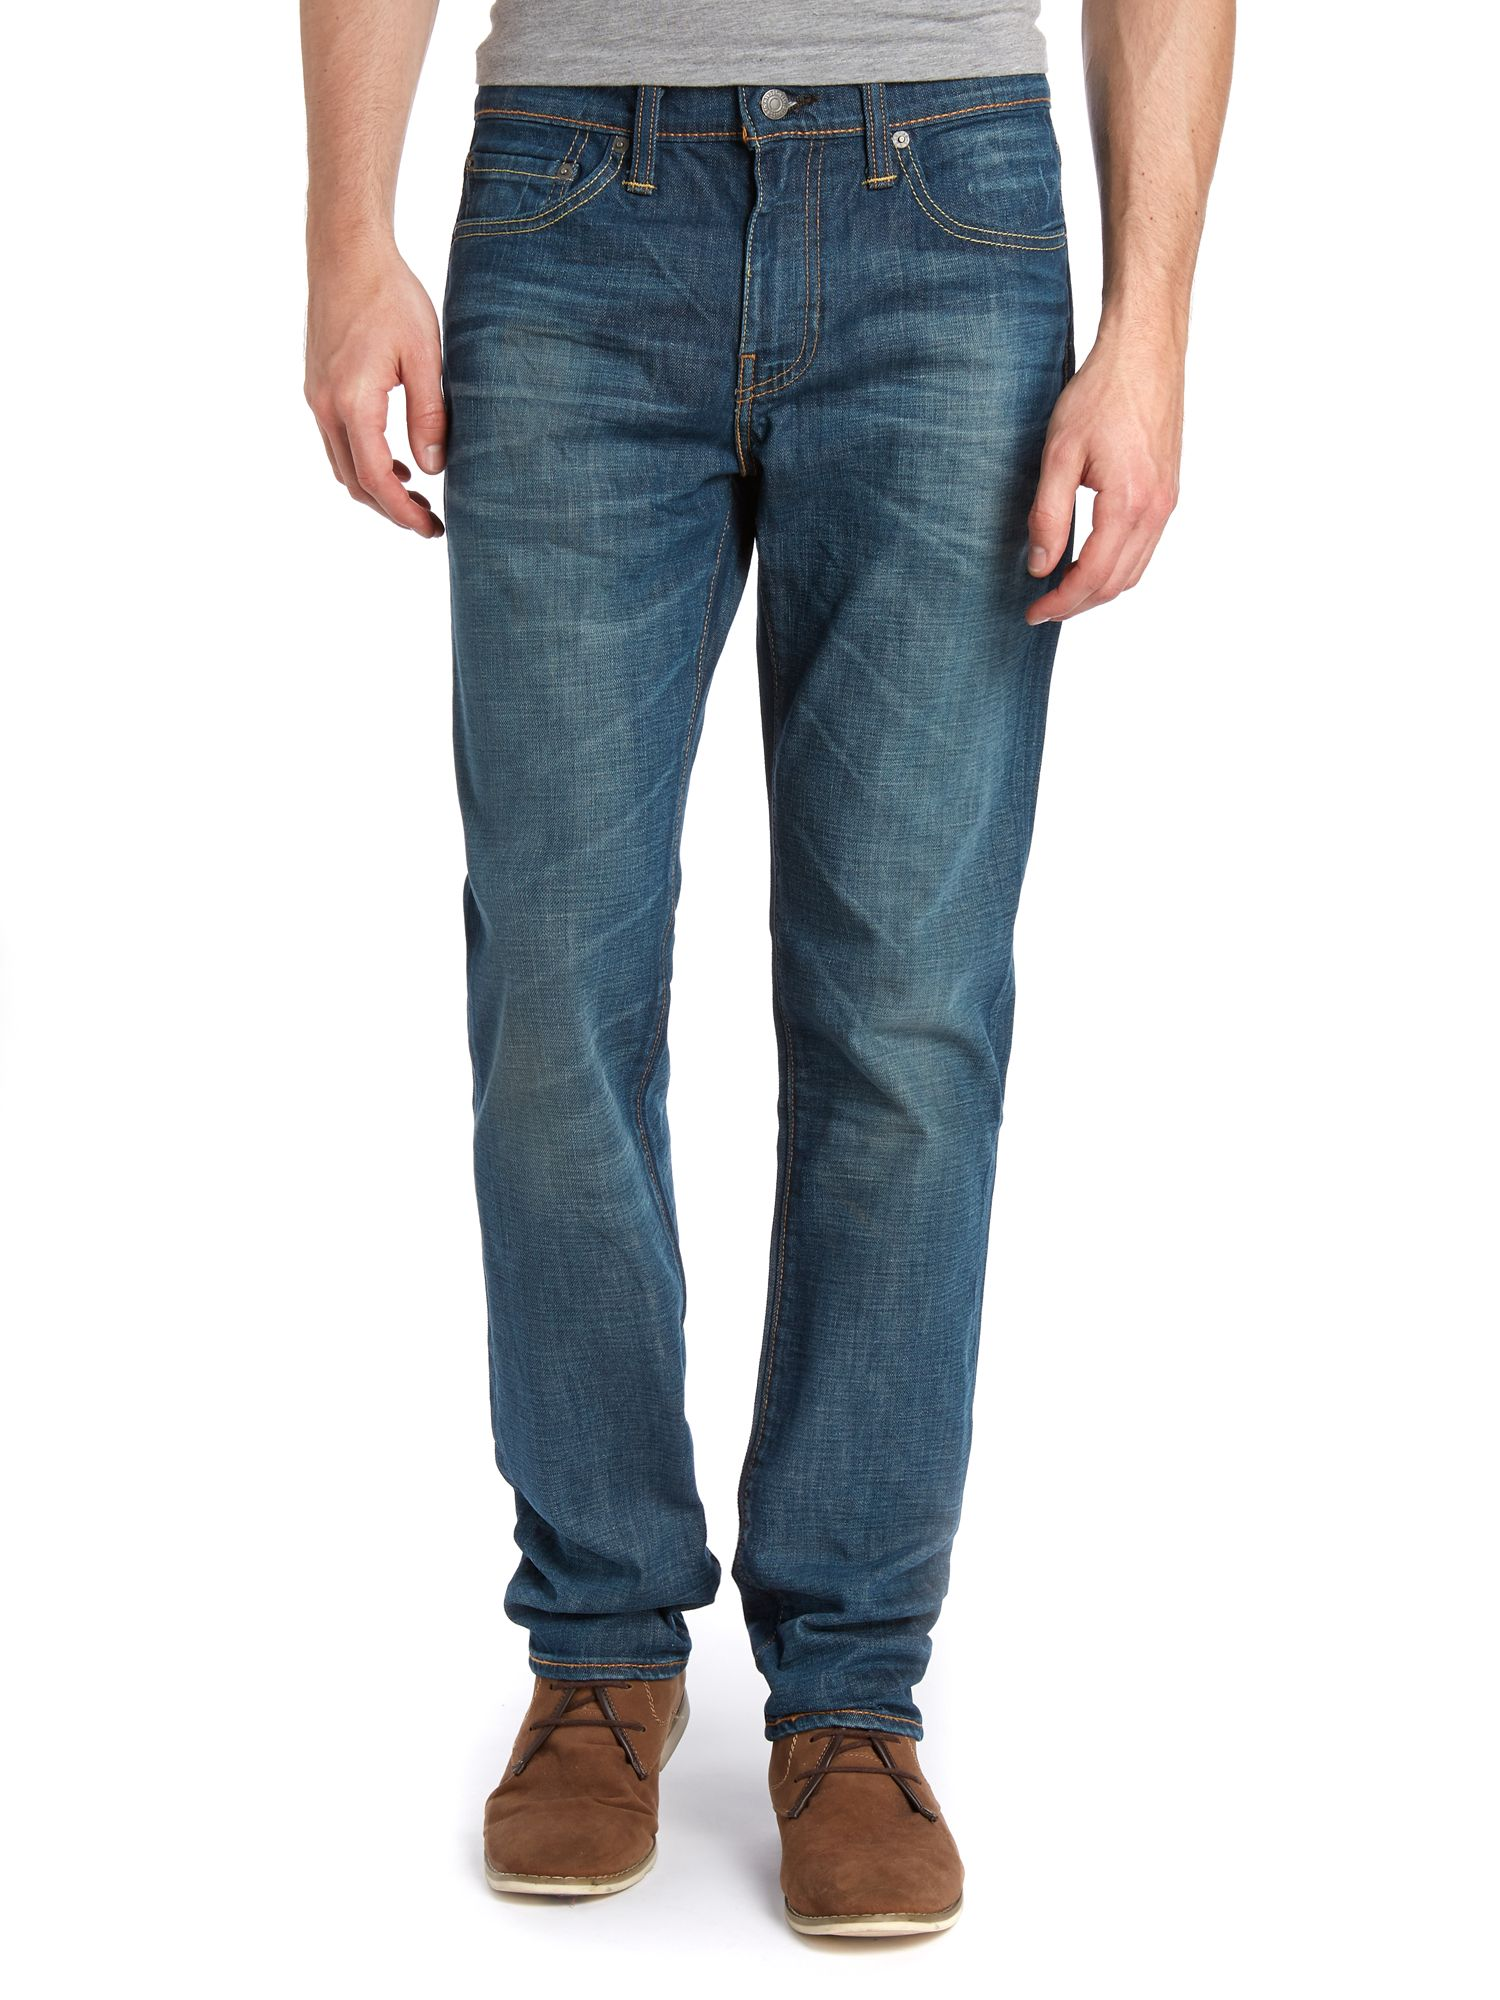 511 explorer rinse slim fit jeans